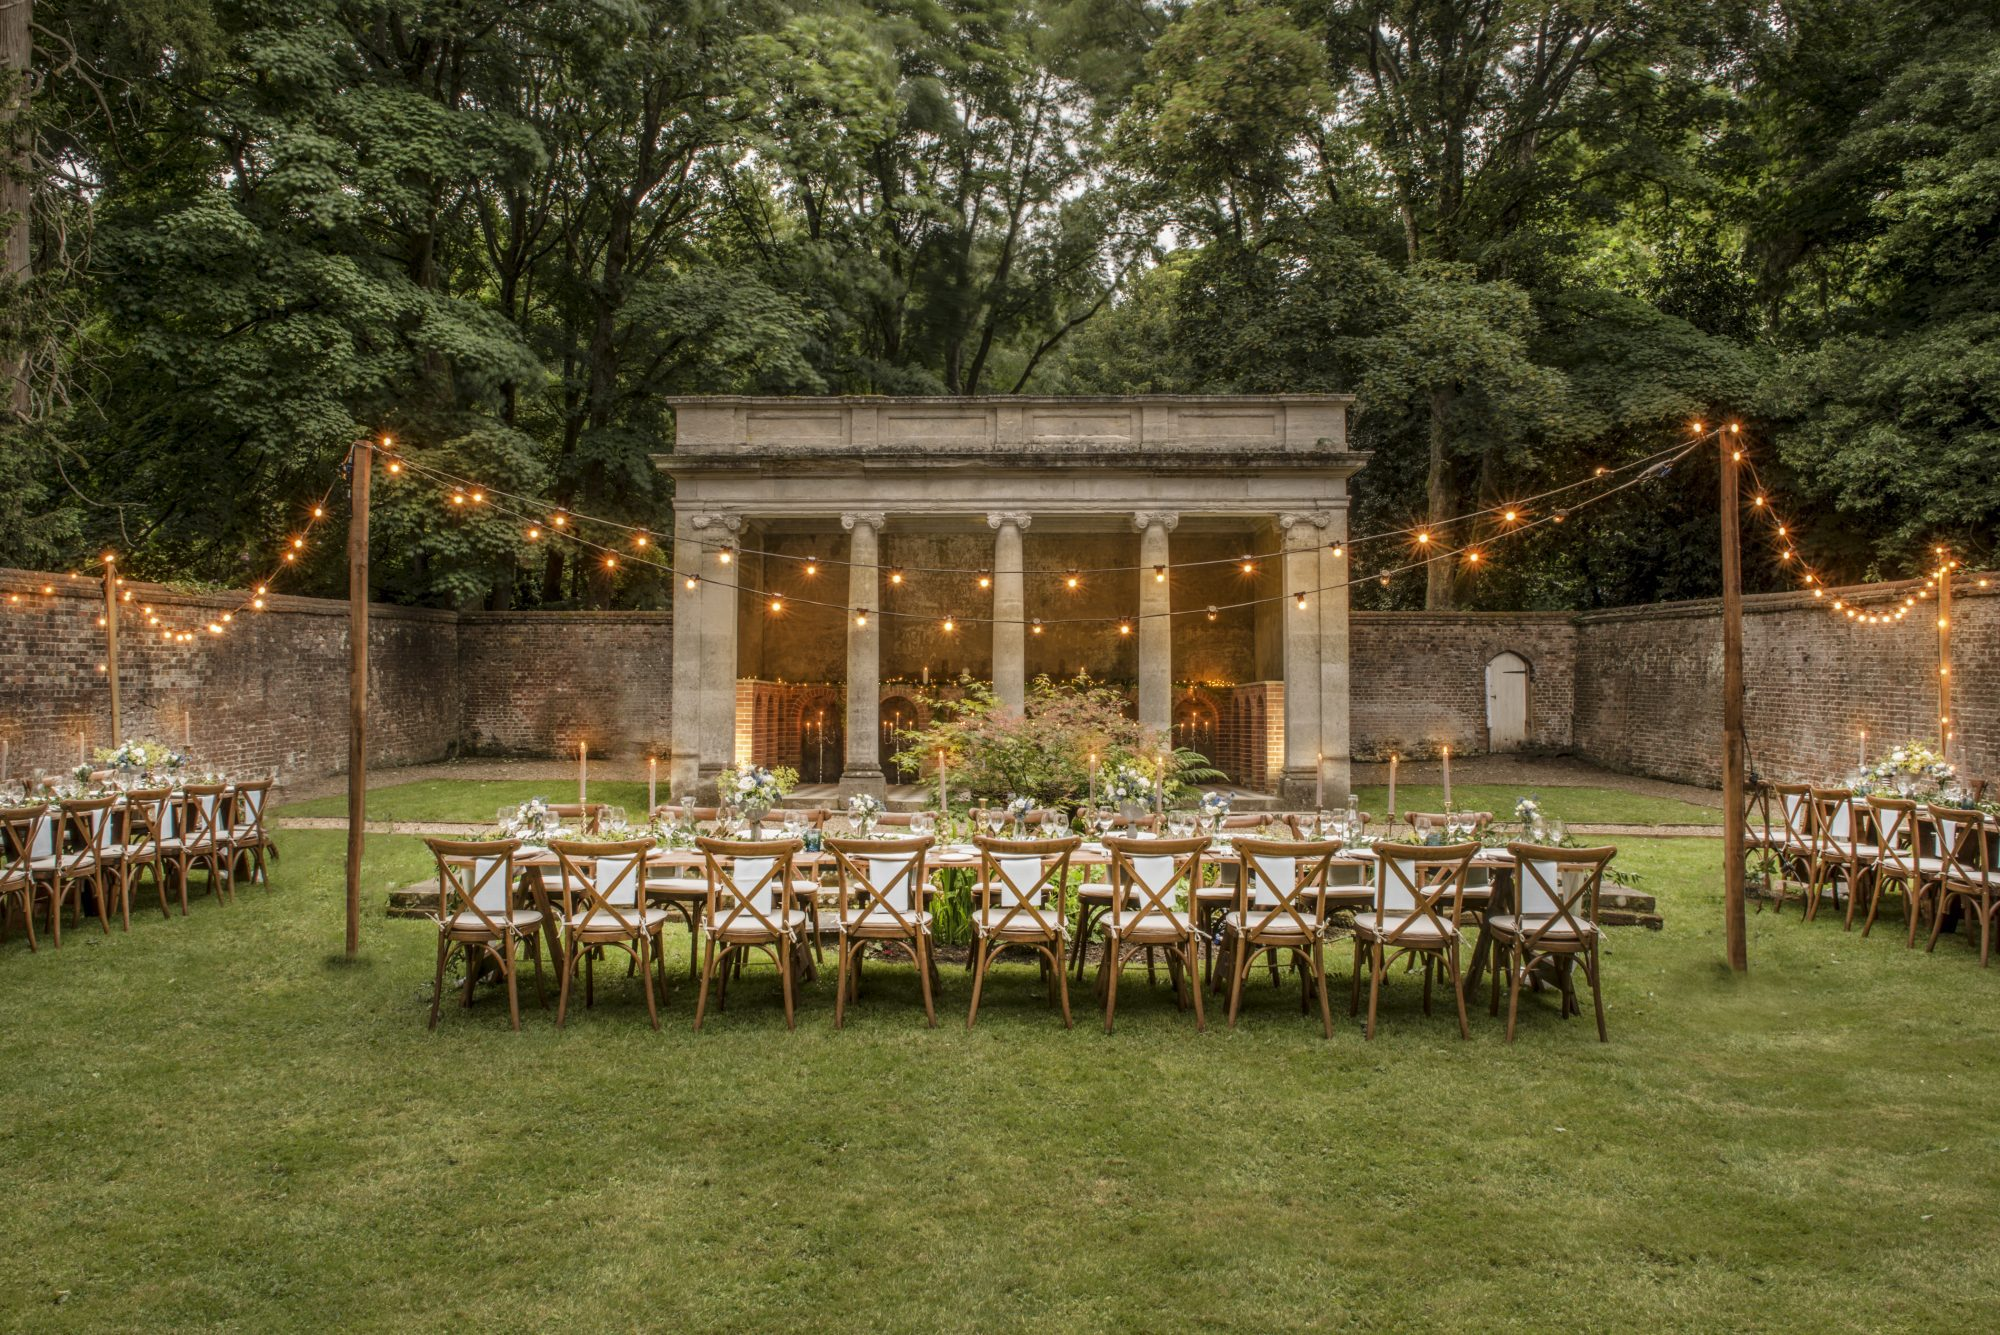 Roman Temple Outdoor Ceremony Garden at Wotton House  Photo credit 'trulyquirkyweddingvenues.com'